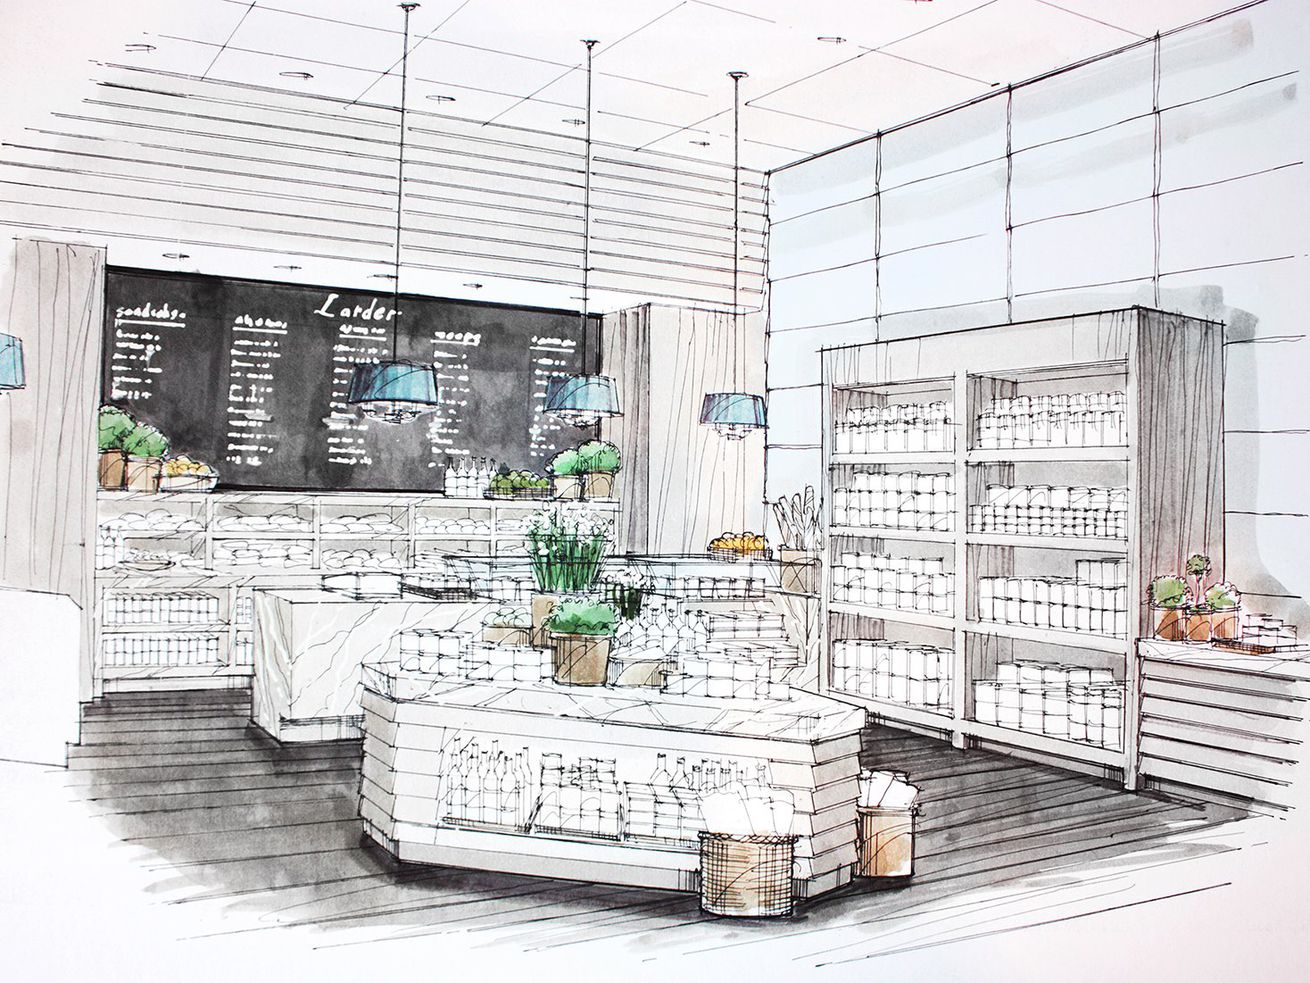 An original drawing for the Larder